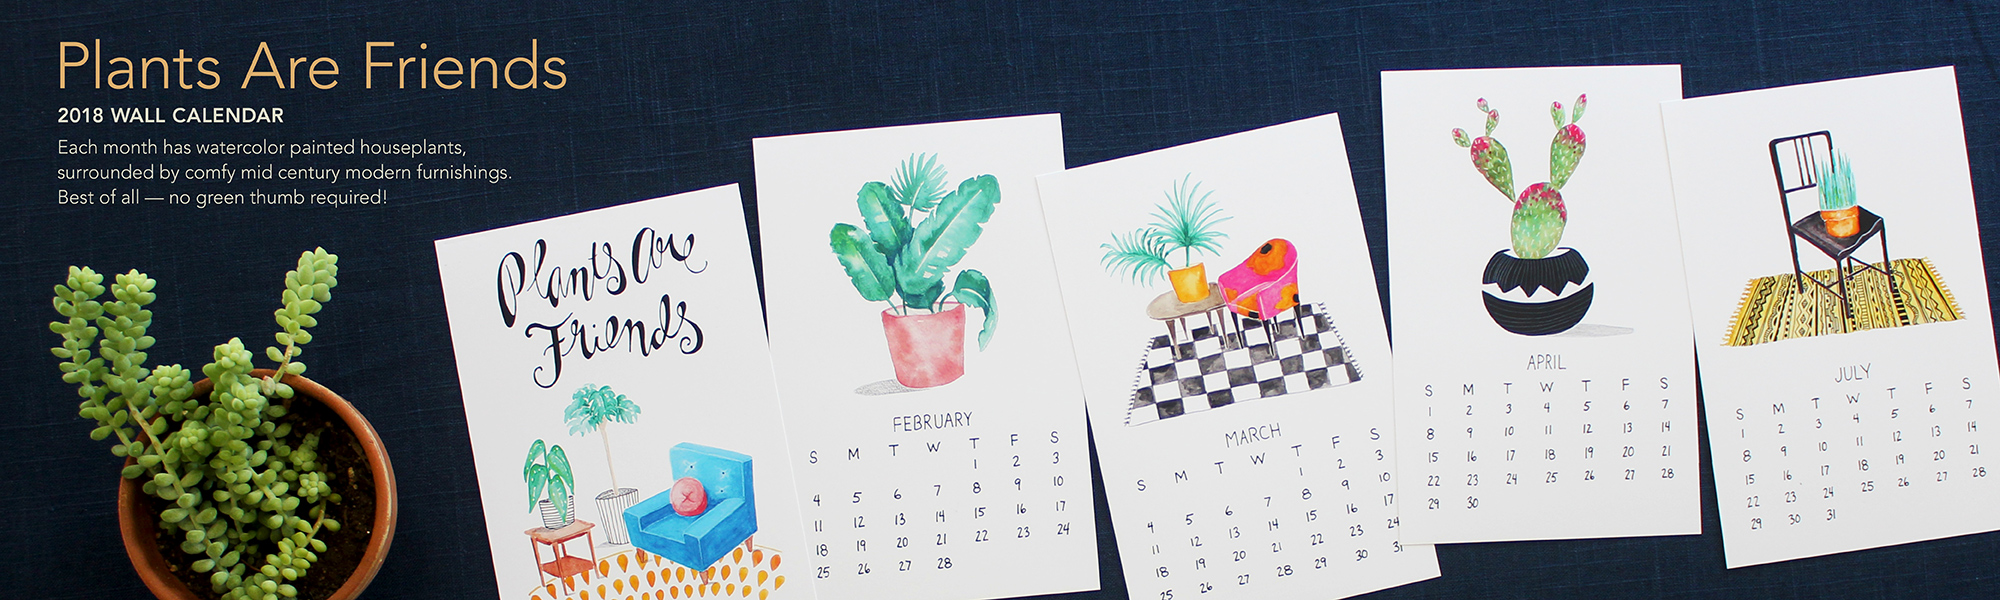 2018 plants are friends watercolor calendar